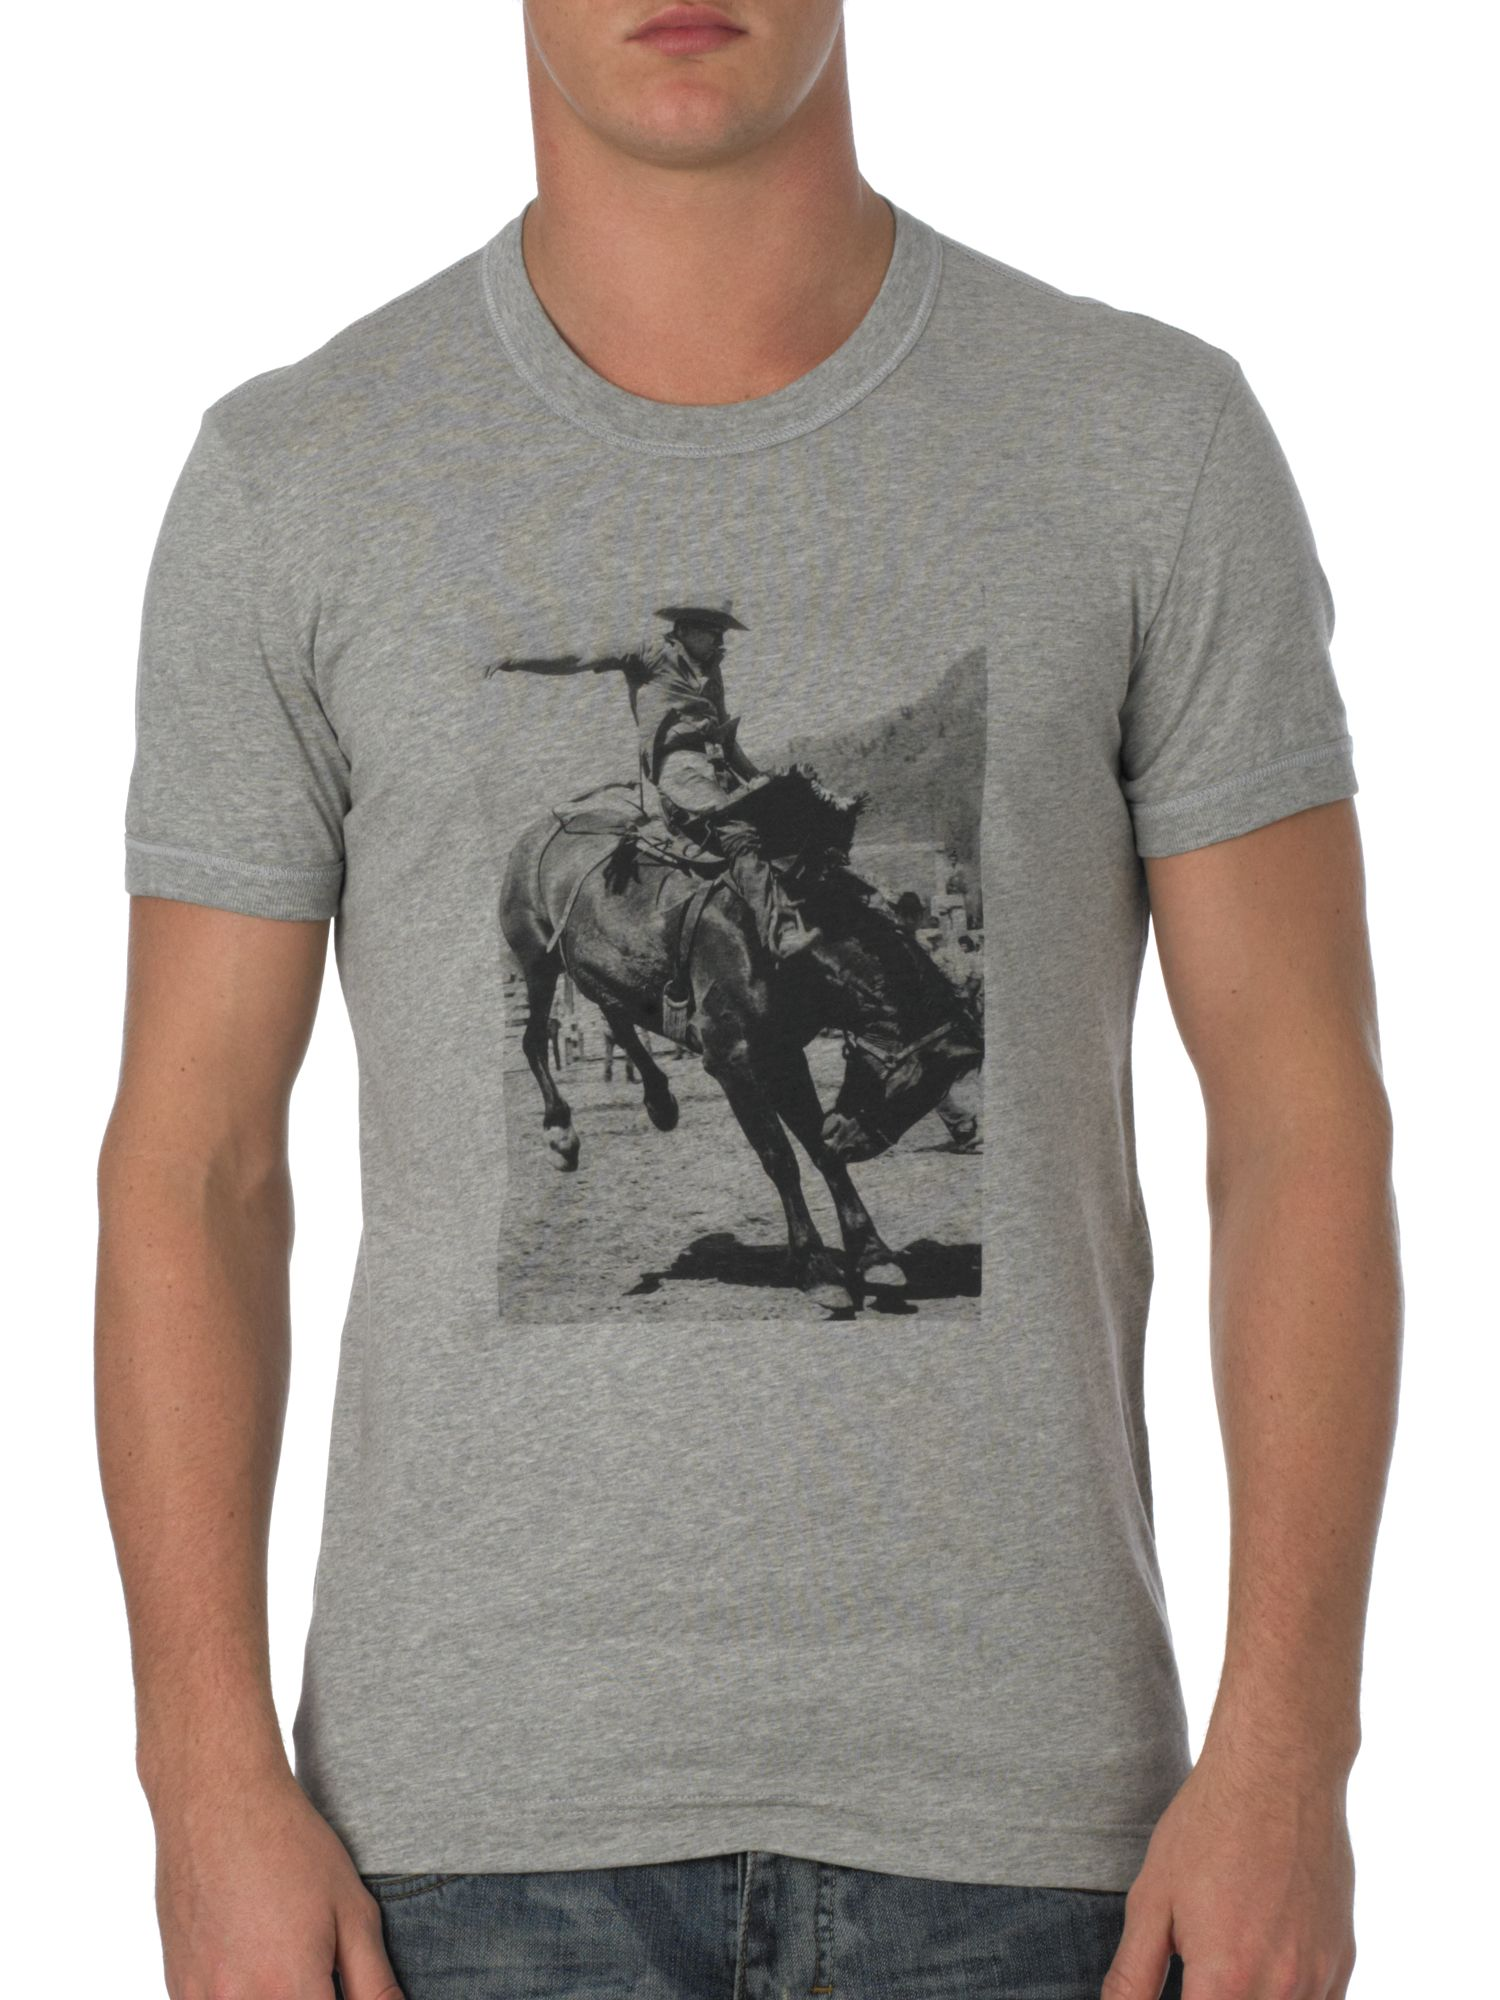 D&G Rodeo print T-shirt product image